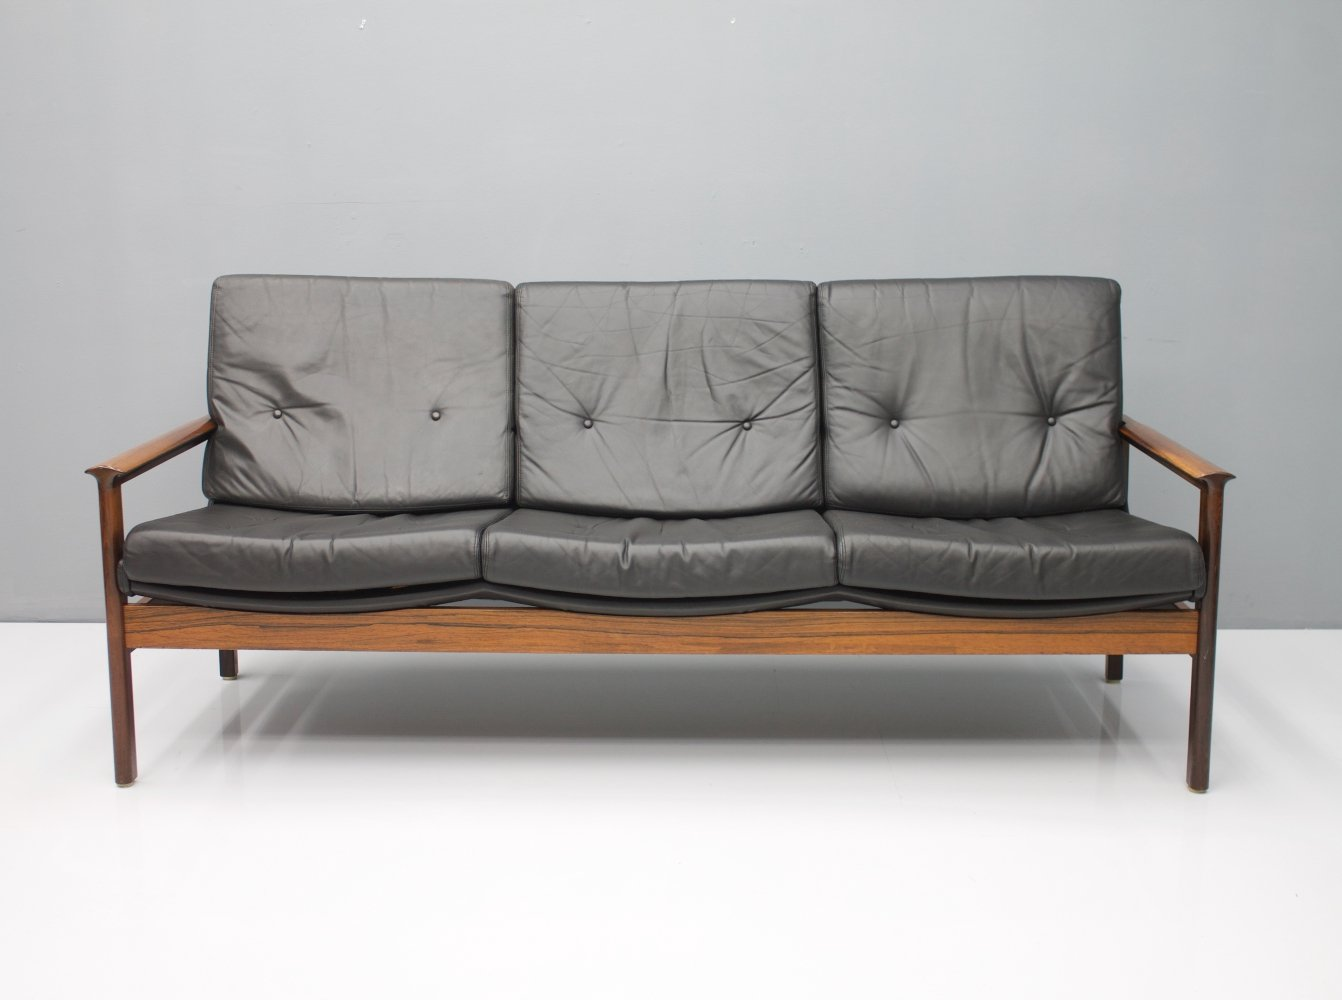 Scandinavian 3-seat Rosewood Sofa with Black Leather, 1960s